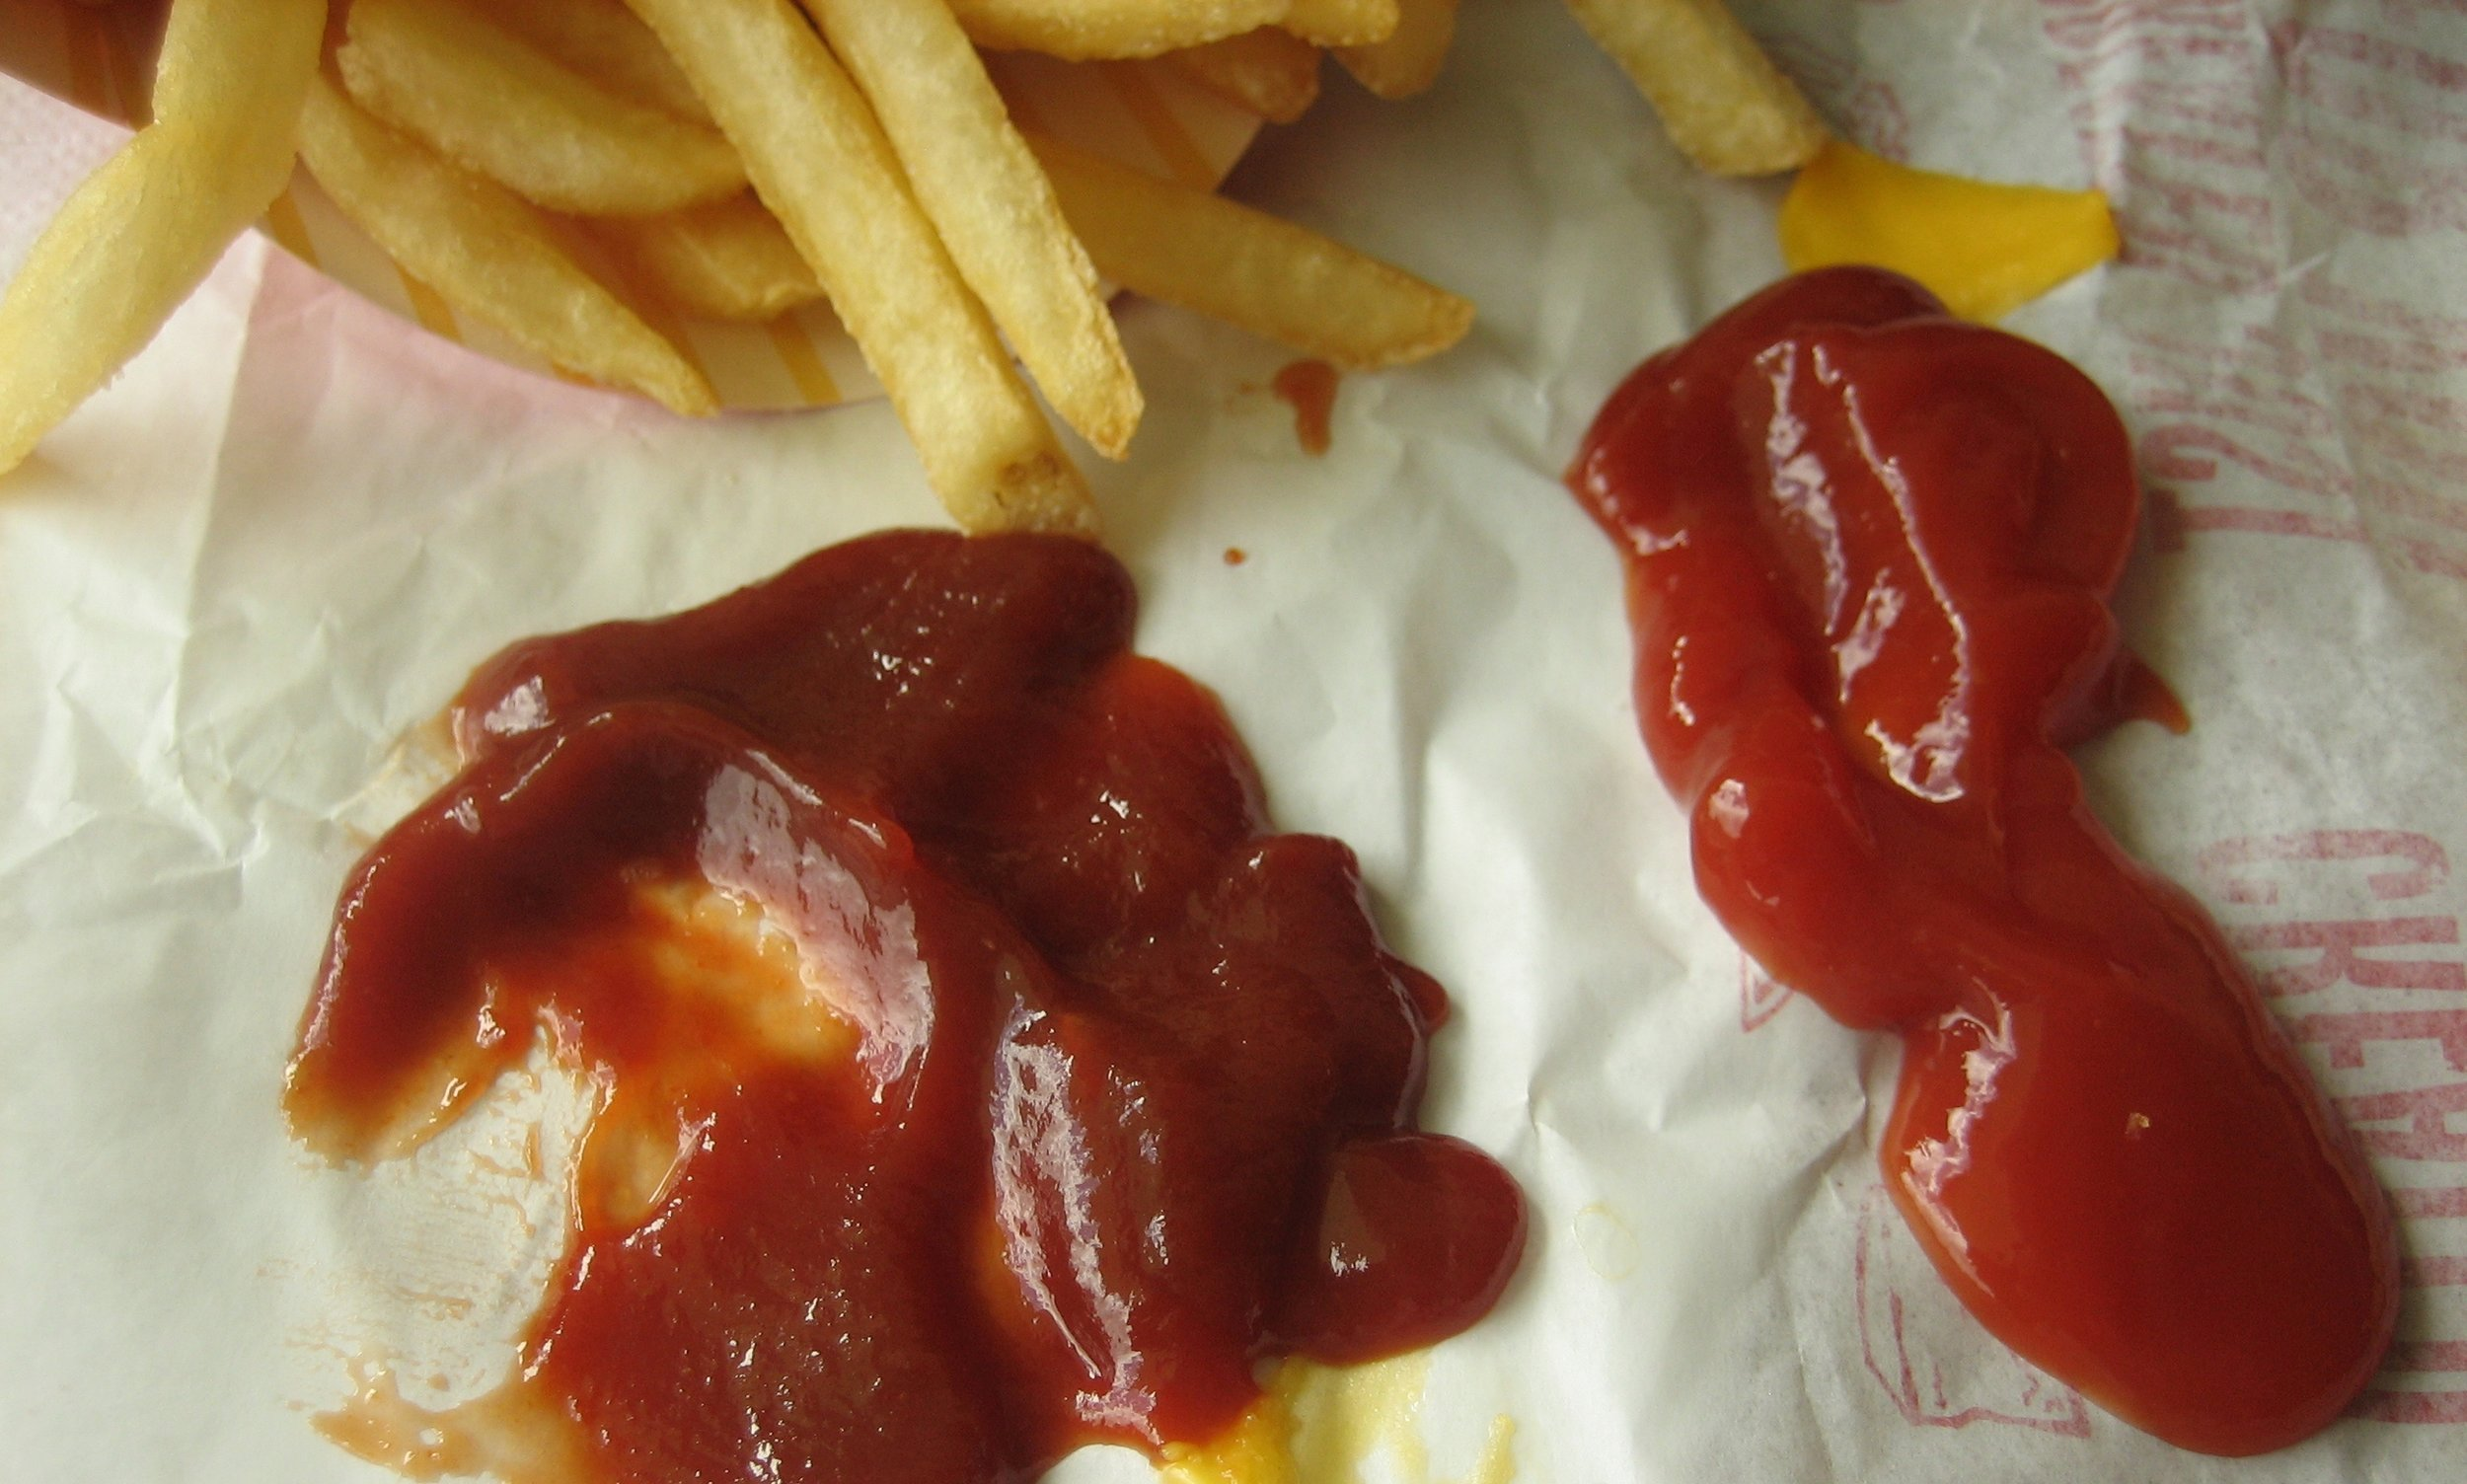 Heinz_Tomato_Ketchup_with_fries 2.jpg